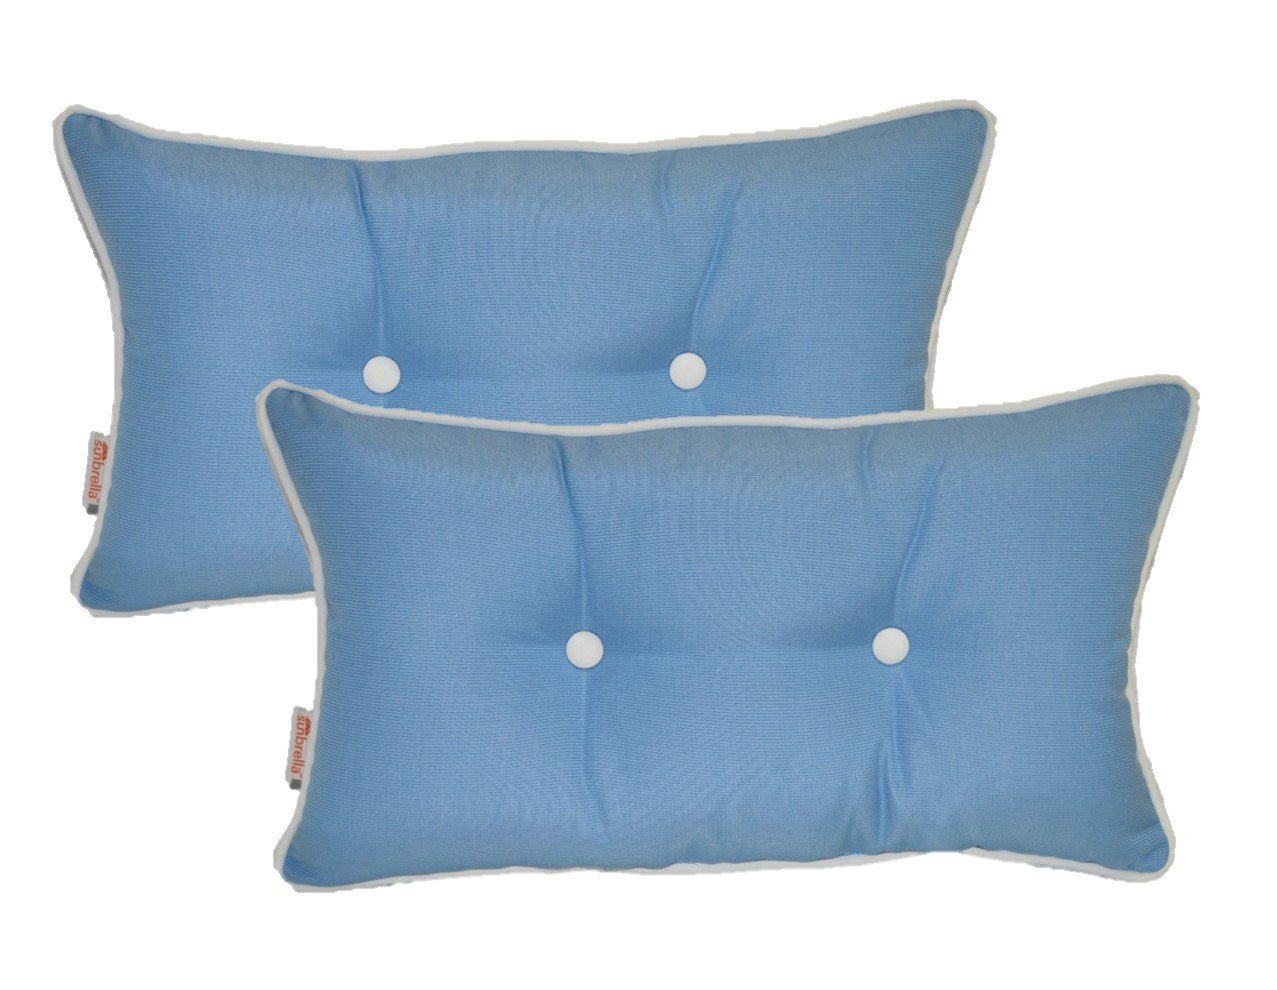 Sunbrella Lumbar Pillows: Which Are The Best?